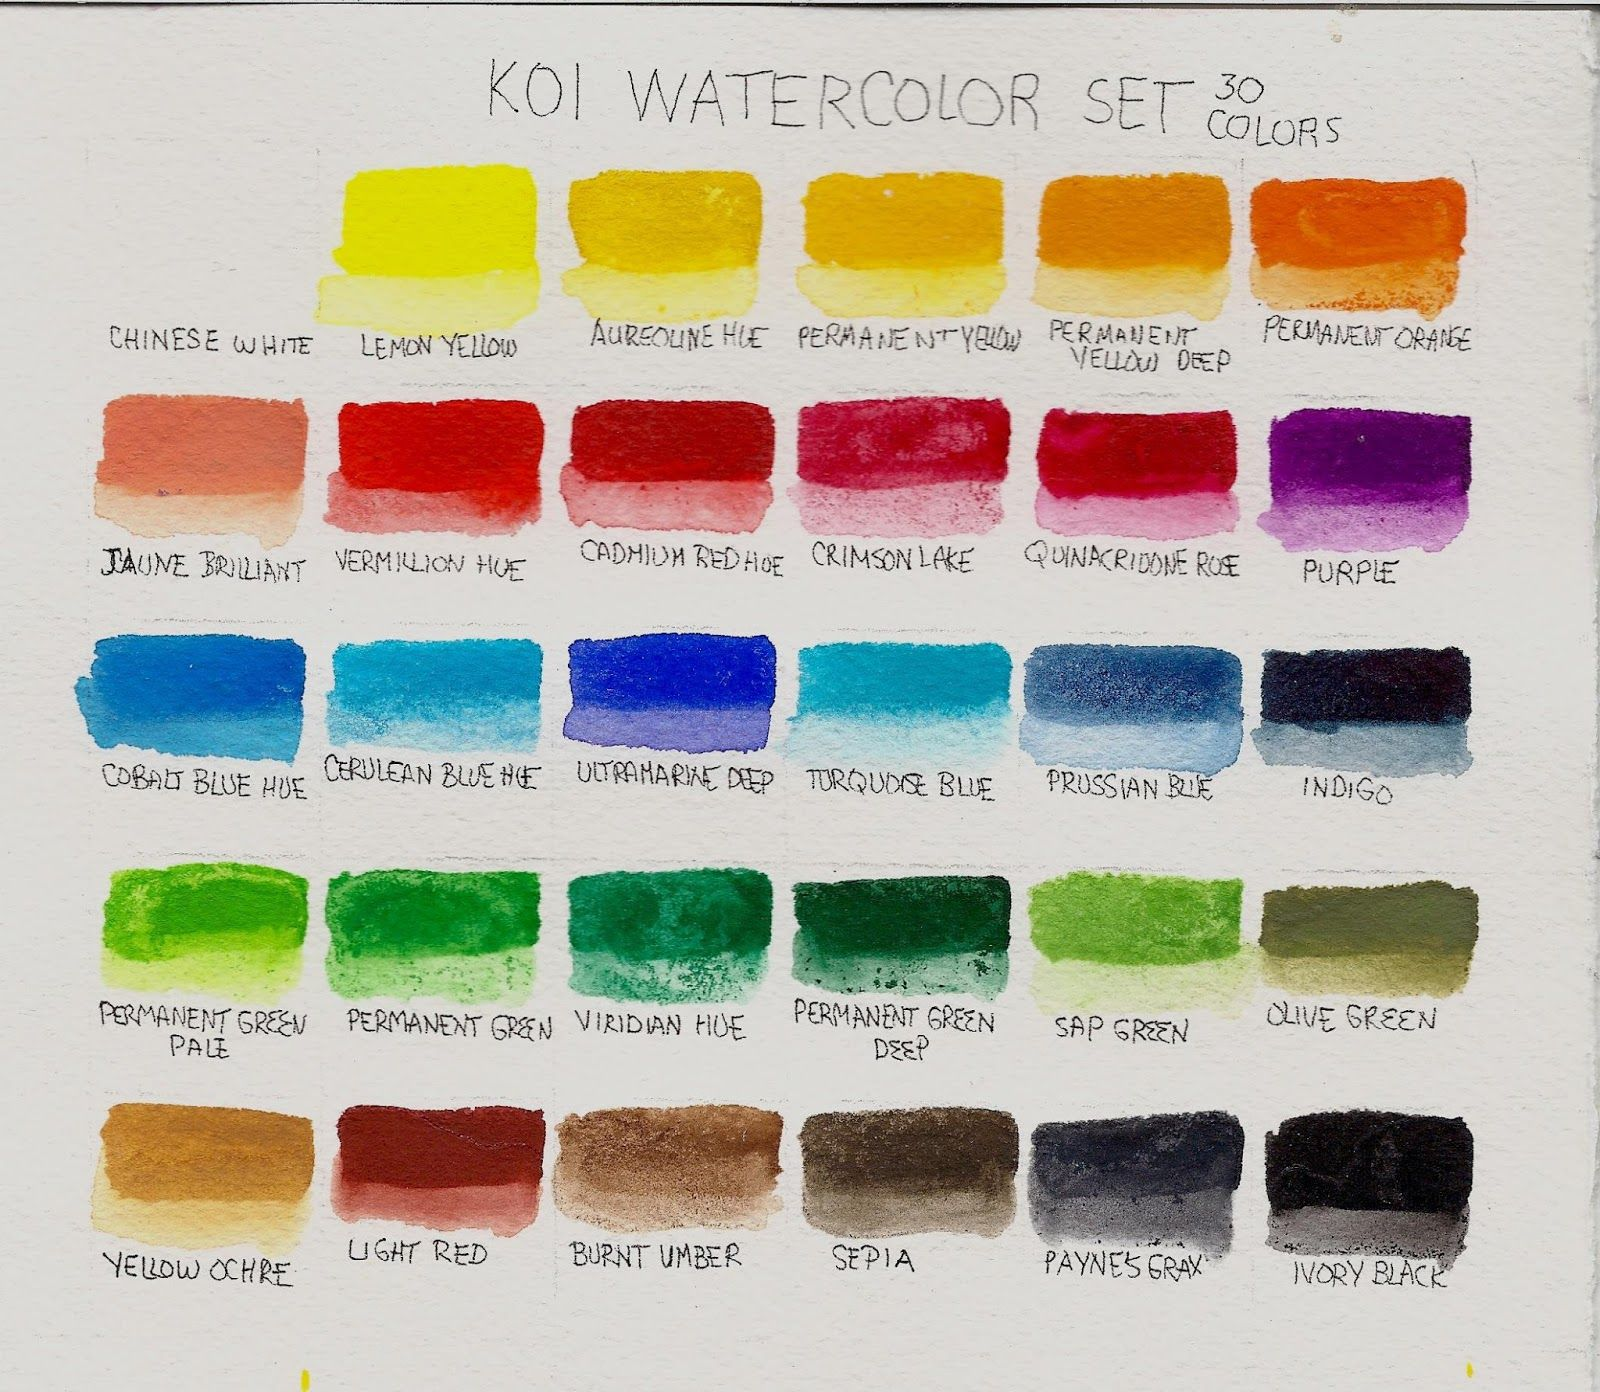 Watercolor artists names - Color Name Chart For Sakura Koi Watercolor Pocket Field Set 30 Artists Tools Pinterest Watercolors Colors And 30